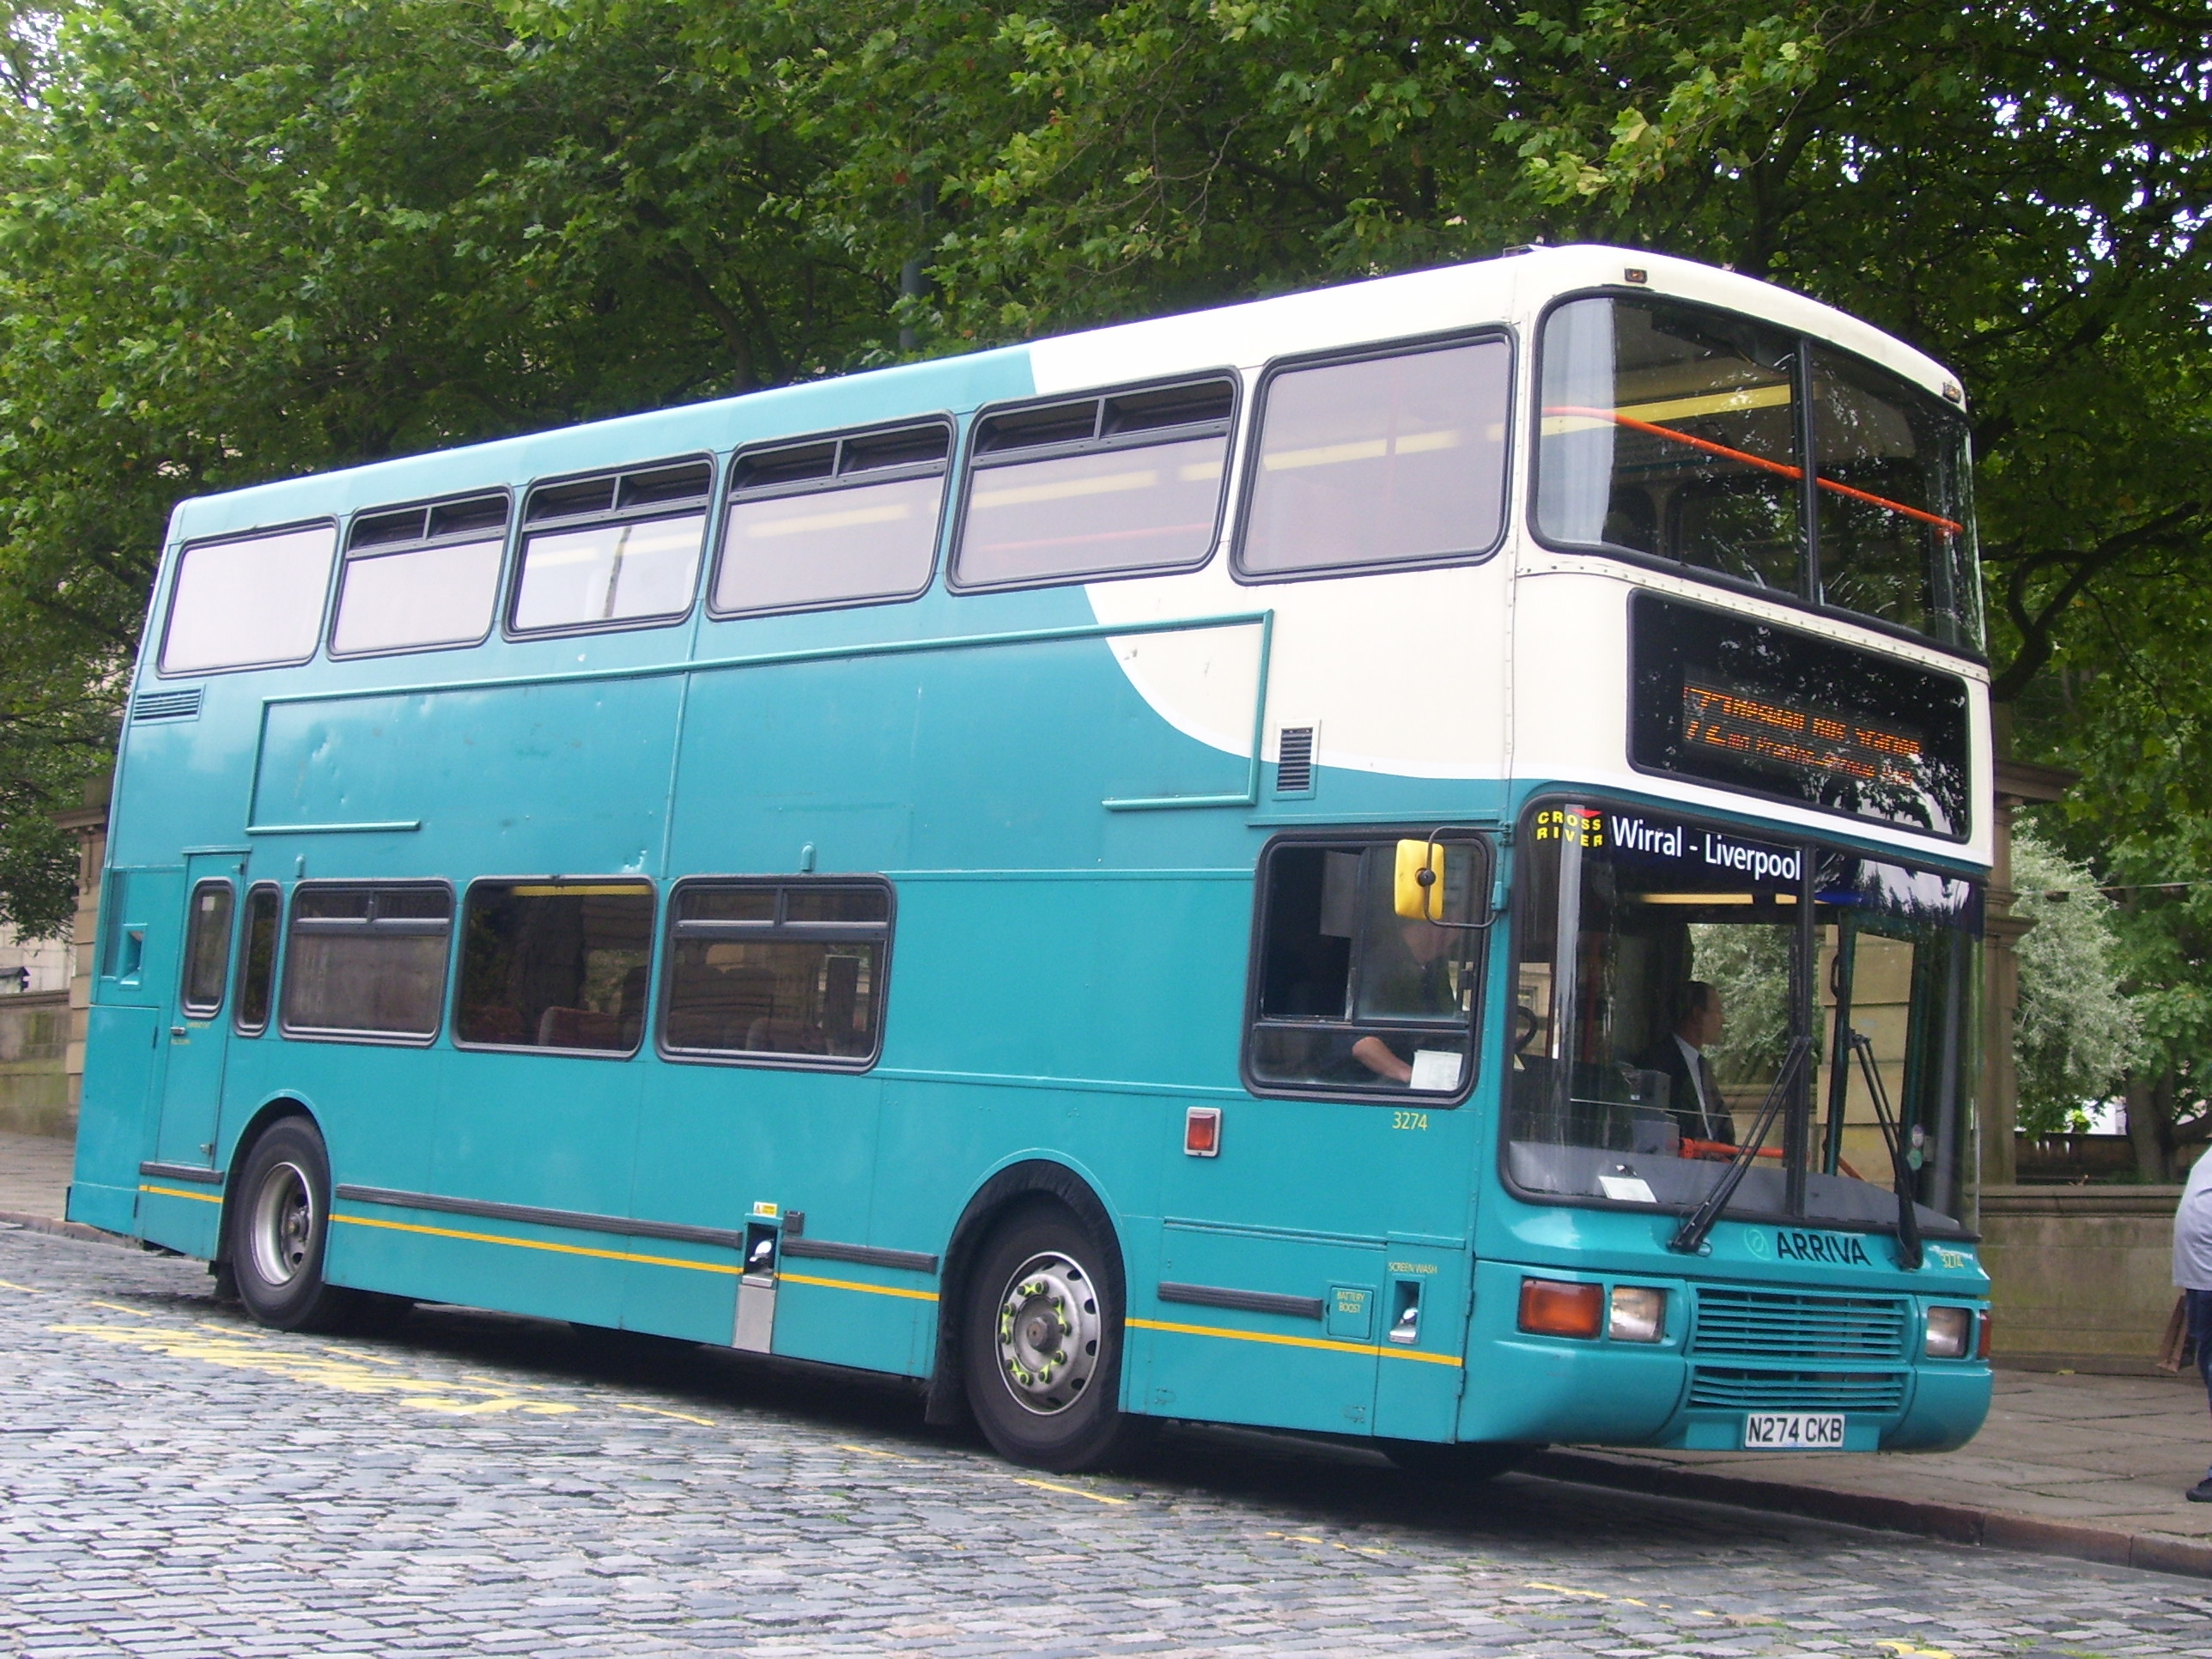 Volvo Olyimpian Palatine II Arriva_North_West_and_Wales_3274